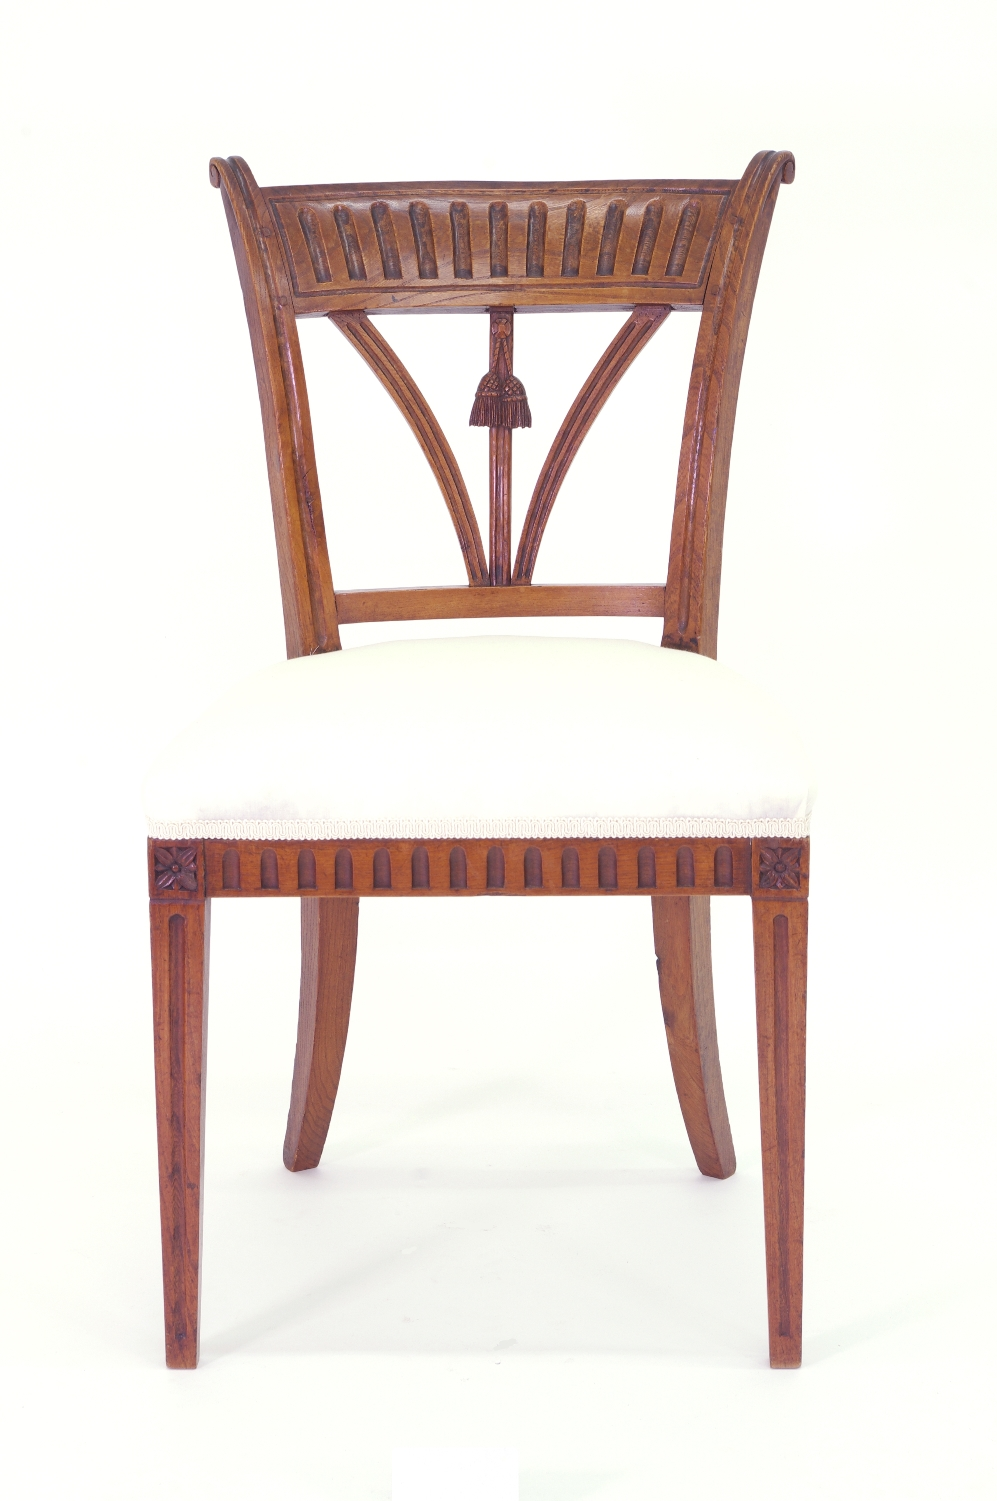 View 4: Set of Four Italian Side Chairs, c. 1800